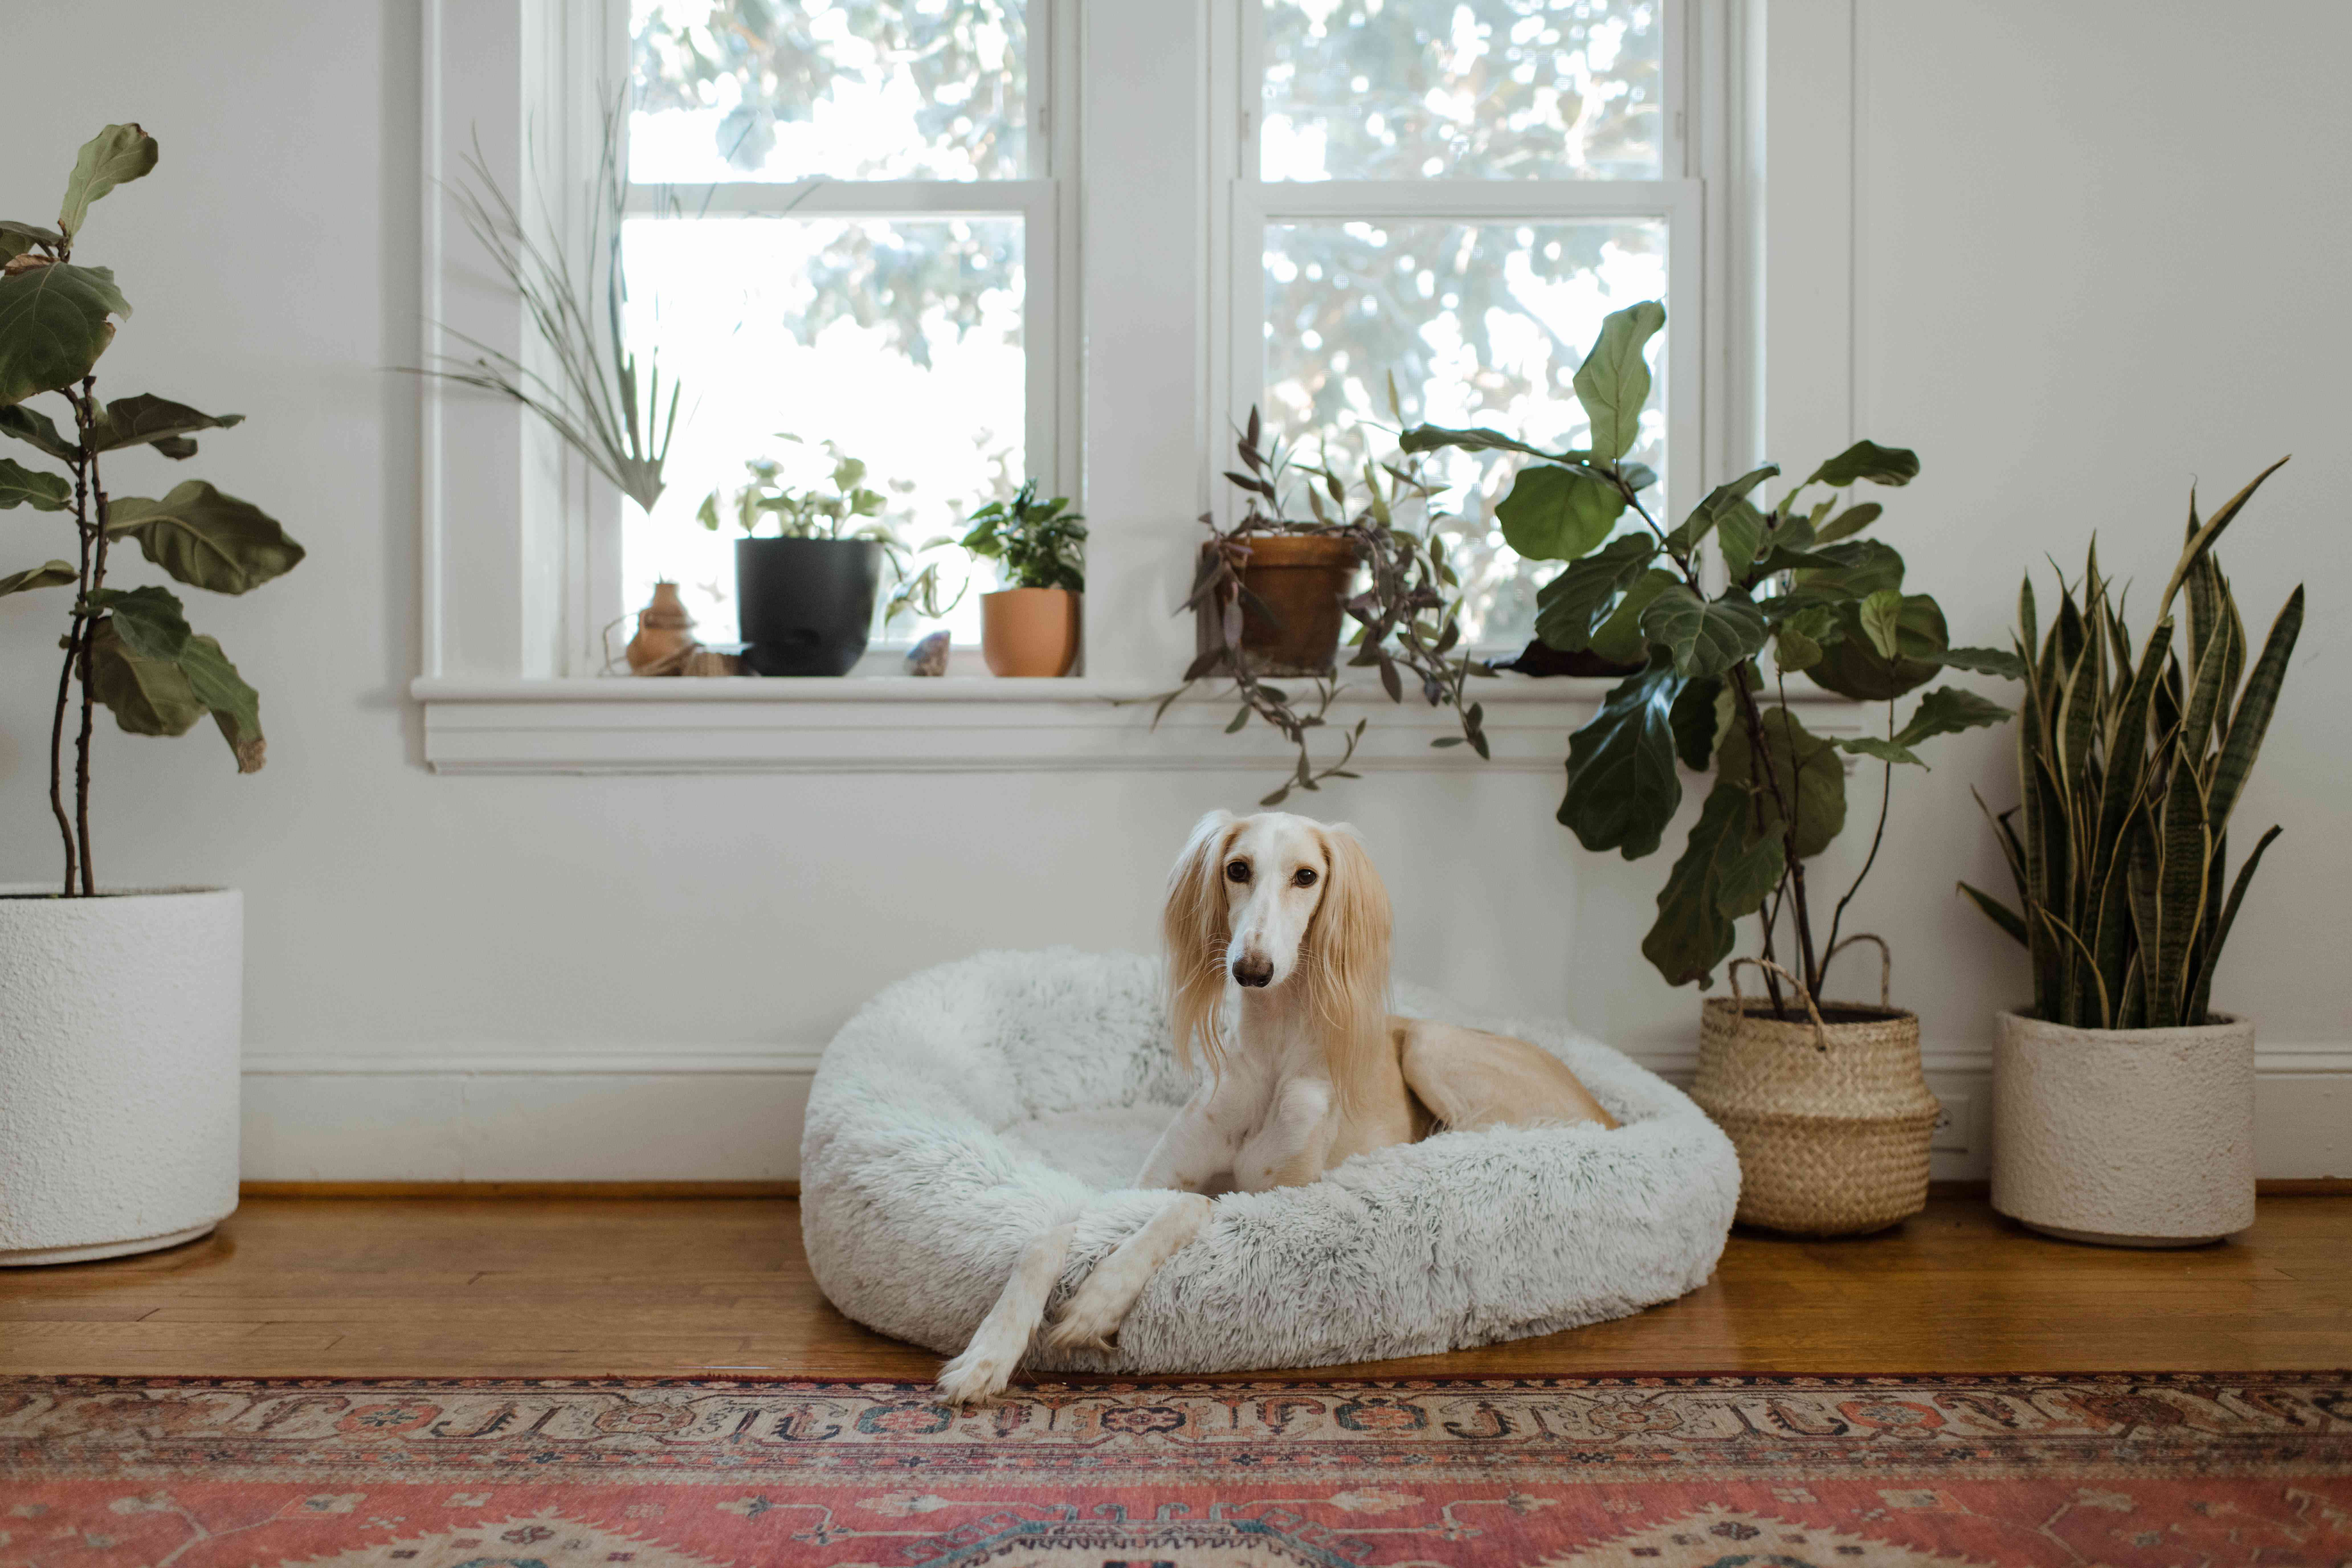 dog in its designated bed area